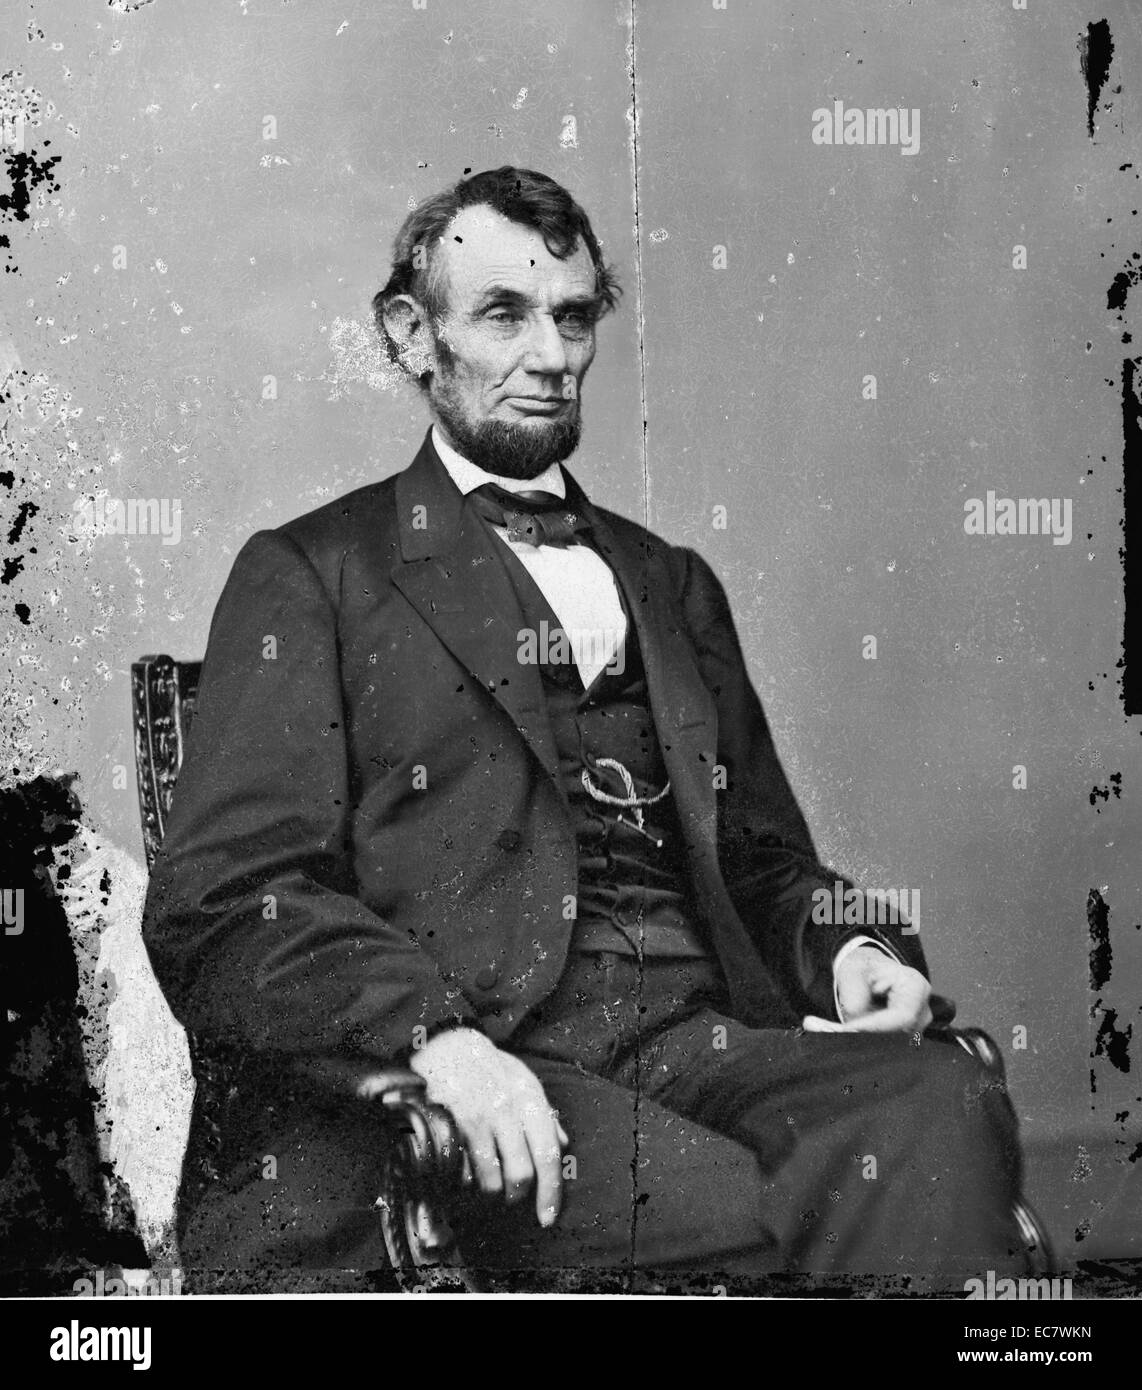 Lincoln (President of the United States): years of government, photo 78